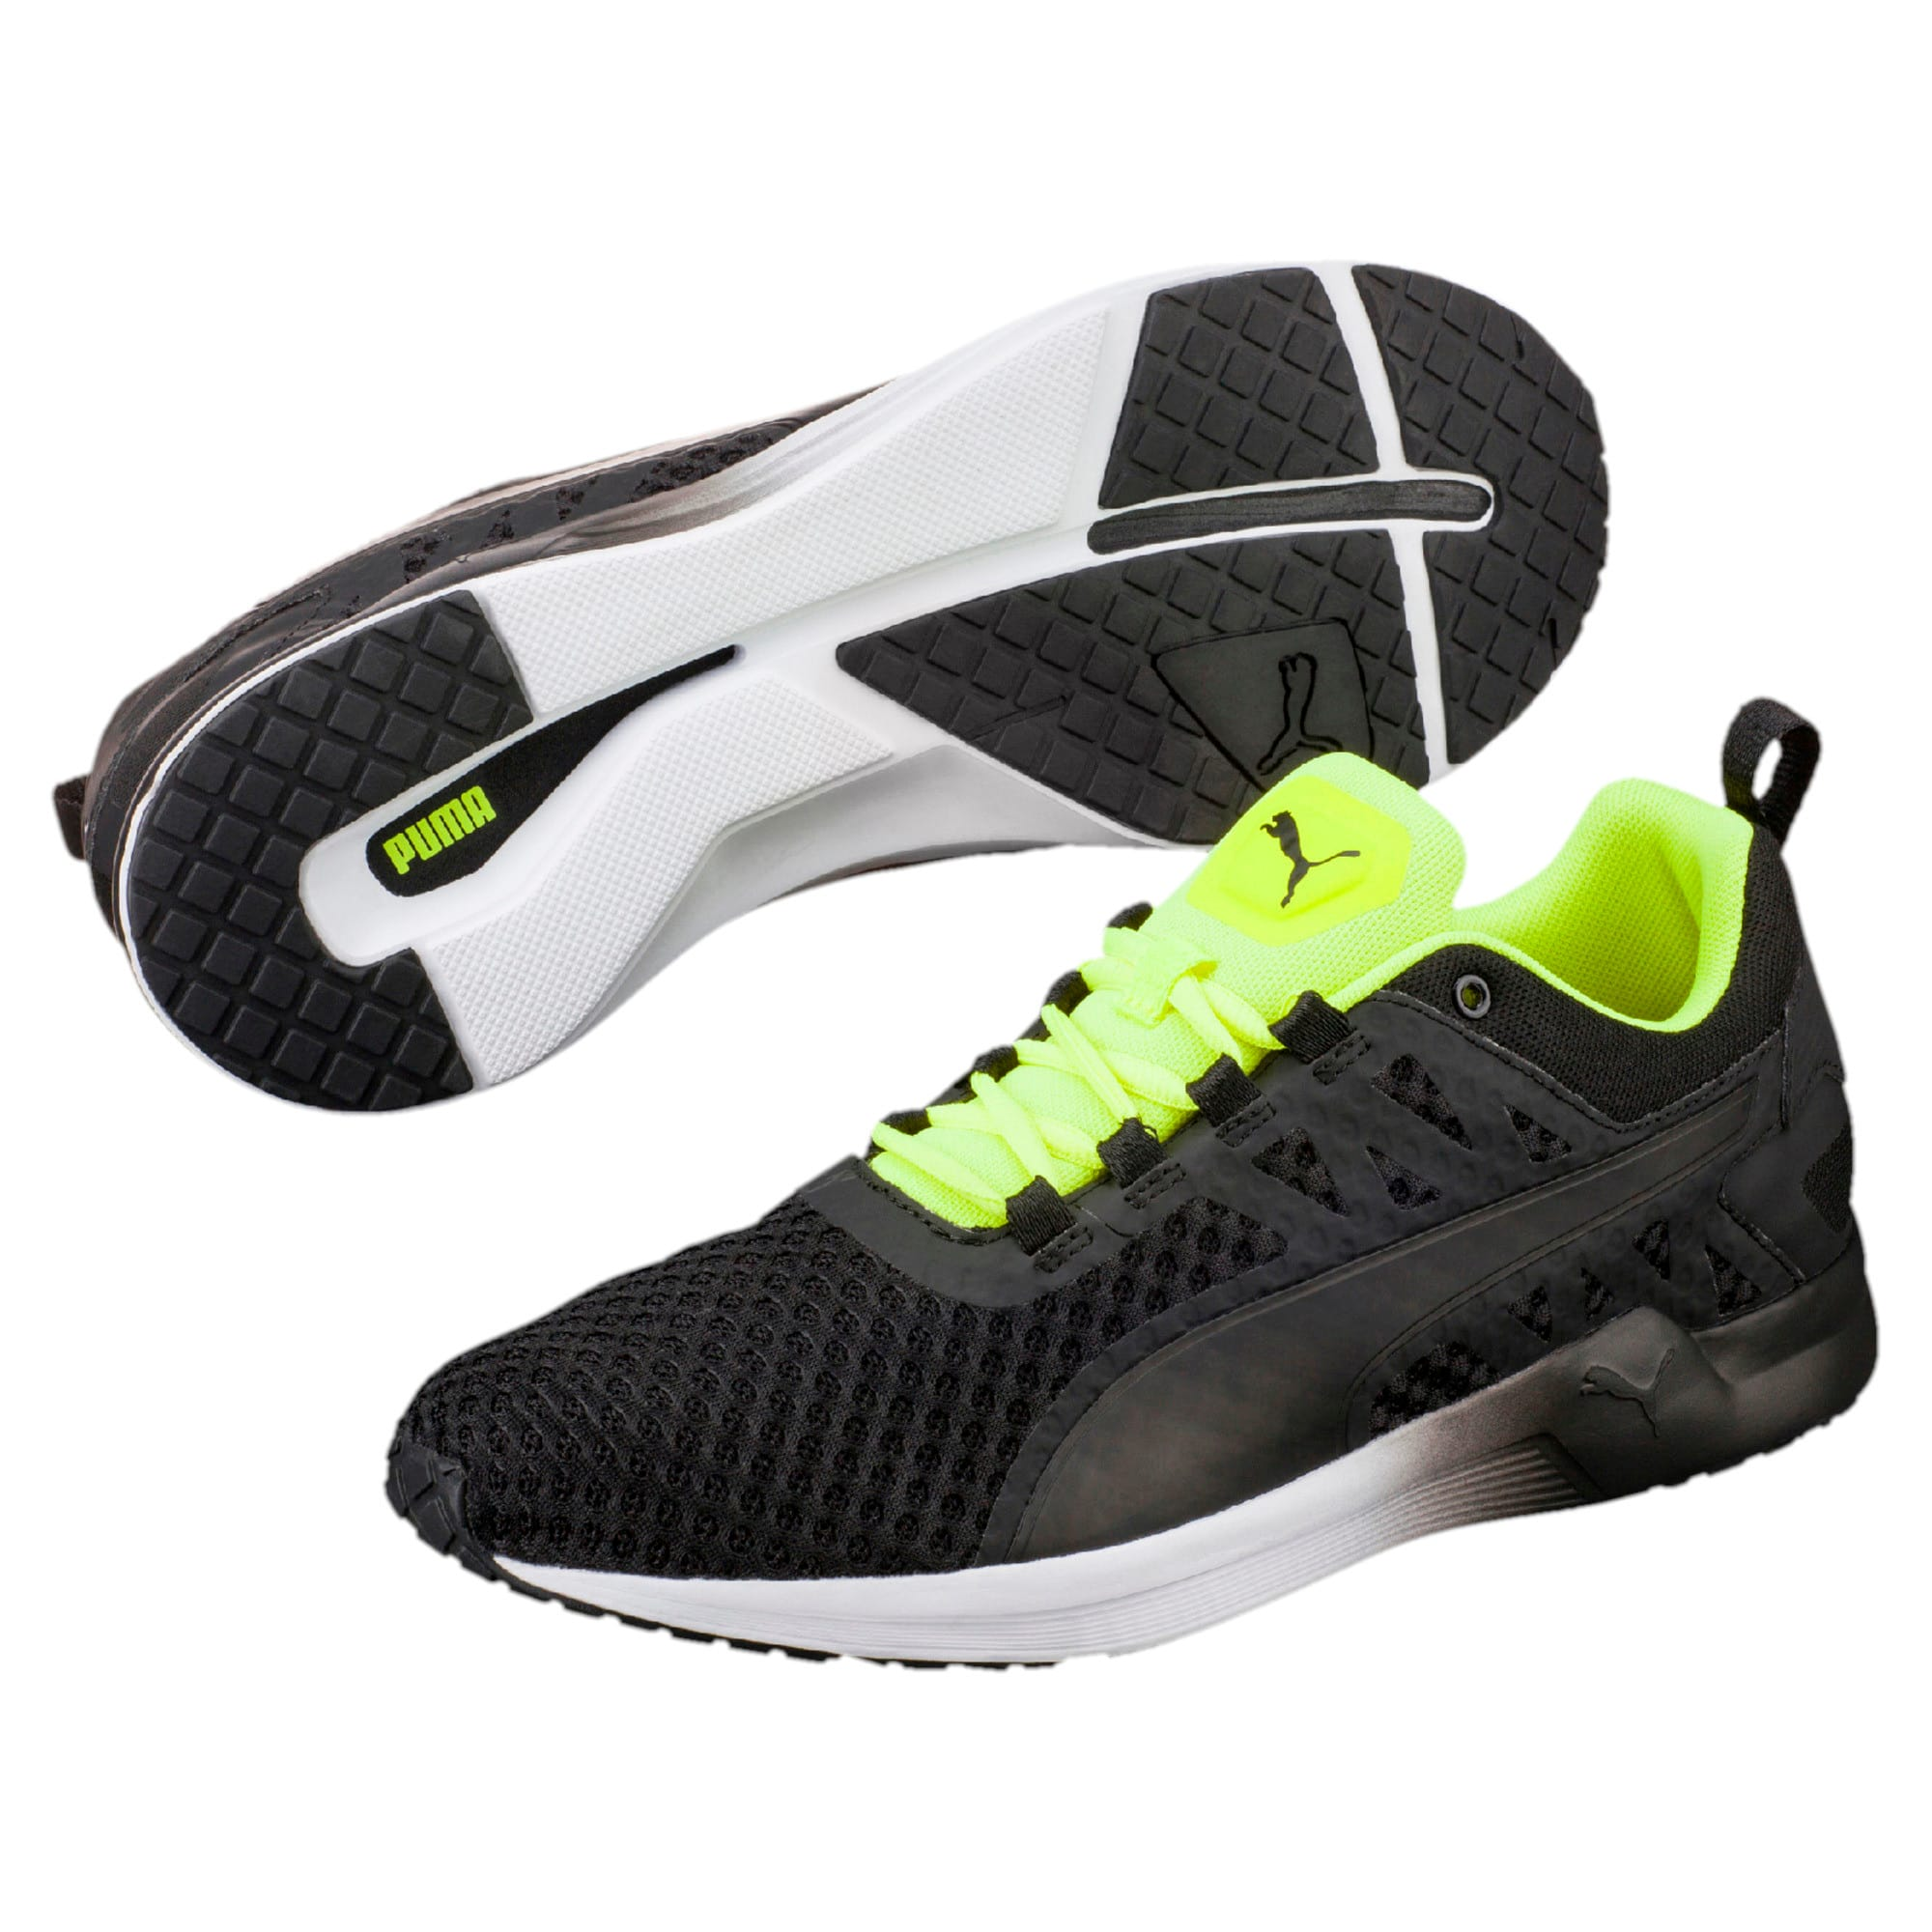 Thumbnail 6 of Pulse XT v2 Mesh Men's Training Shoes, Puma Black-Safety Yellow, medium-IND